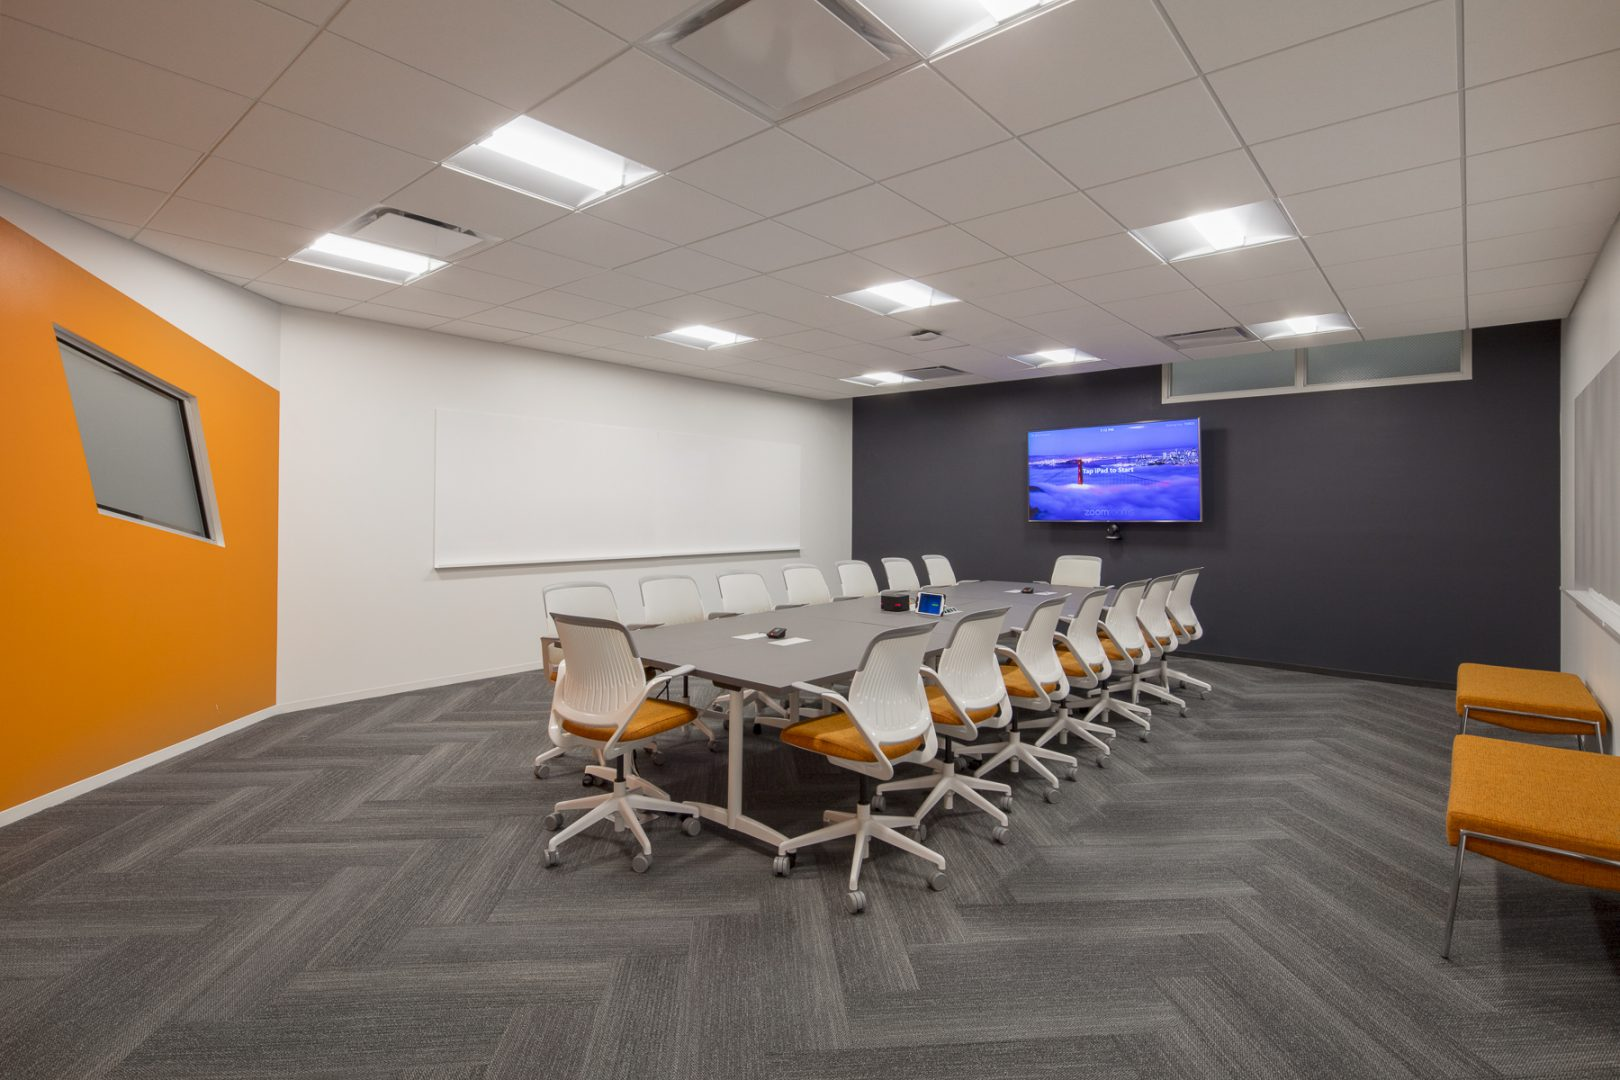 Corporate Technology Interior Design Magento Austin Conference Room Orange Gray